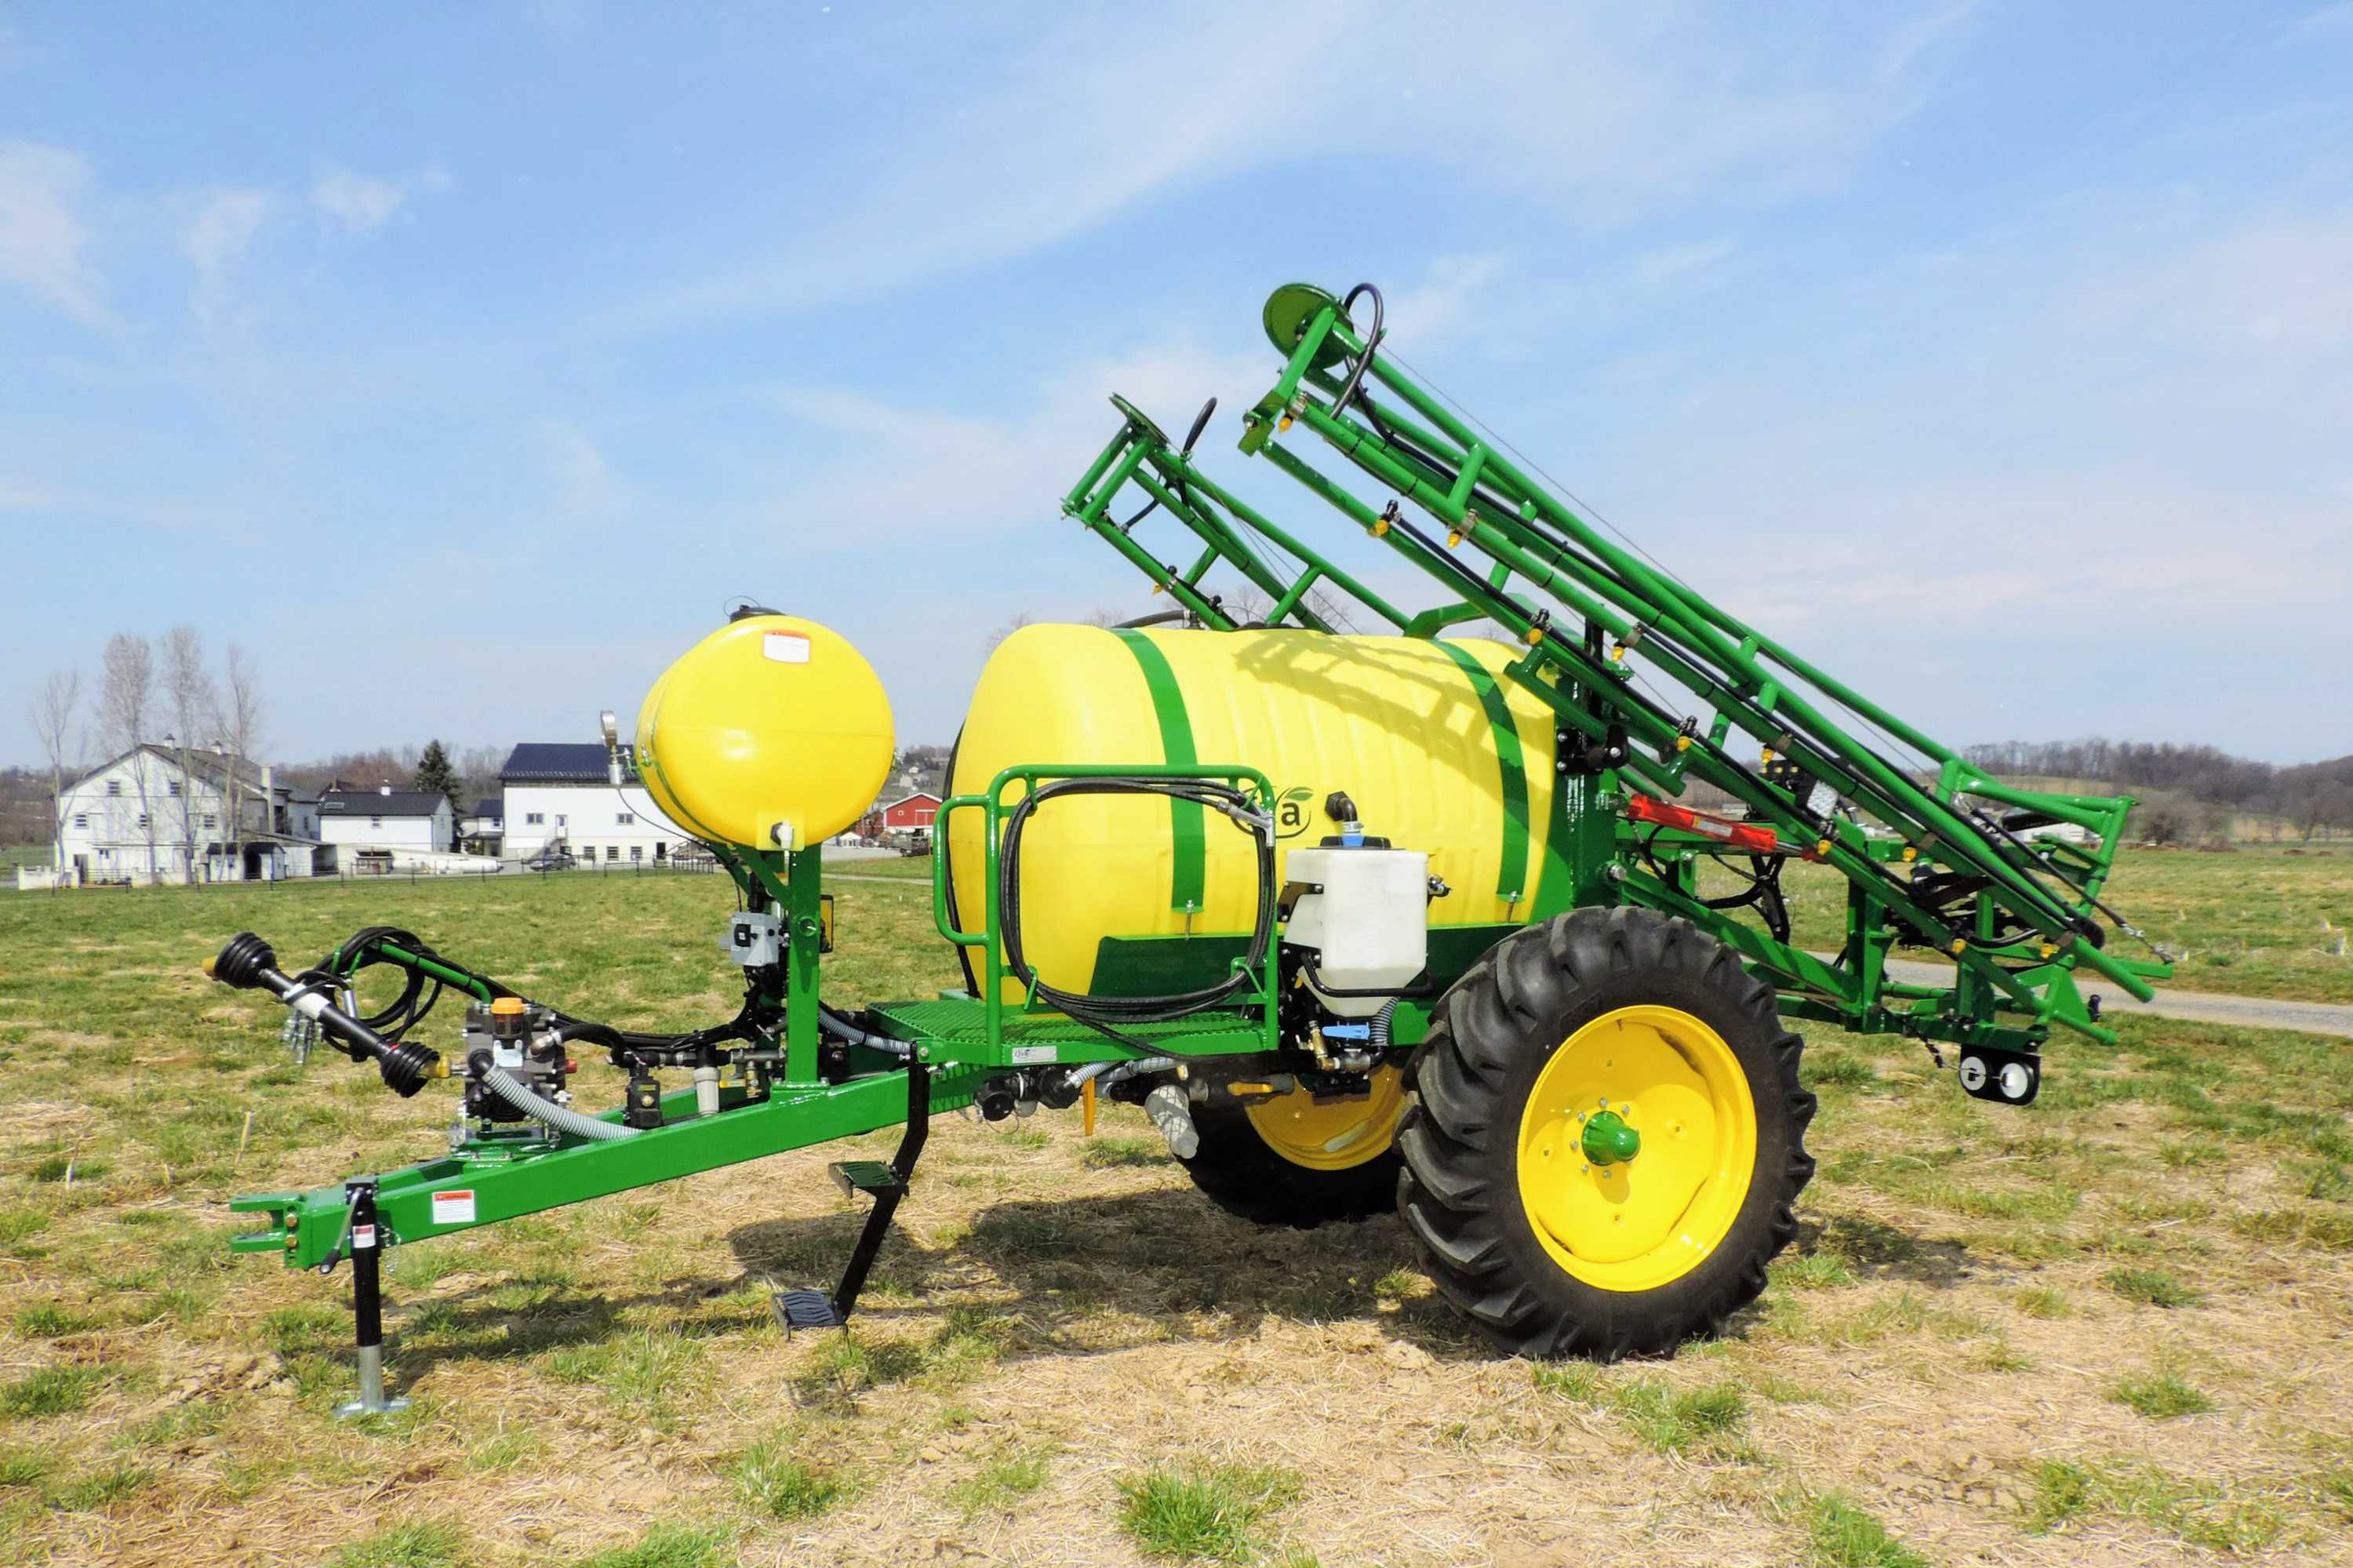 500 gallon Trailer Produce Sprayer